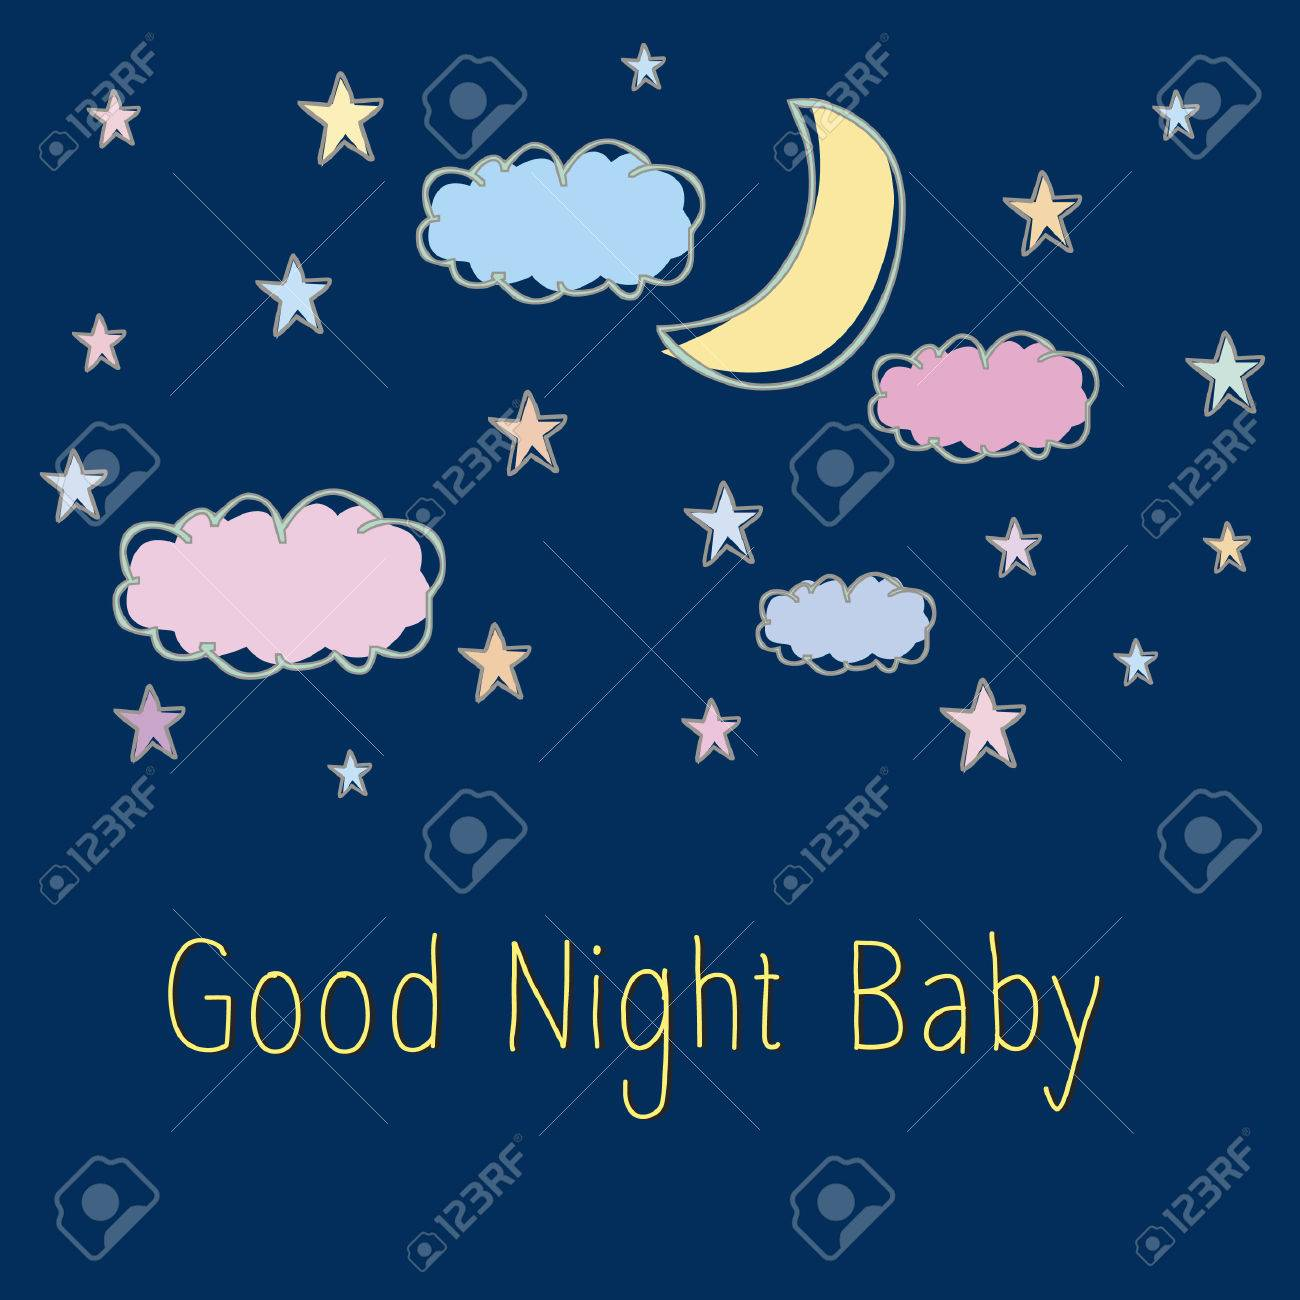 Vector With Text Saying Good Night Baby Royalty Free Cliparts